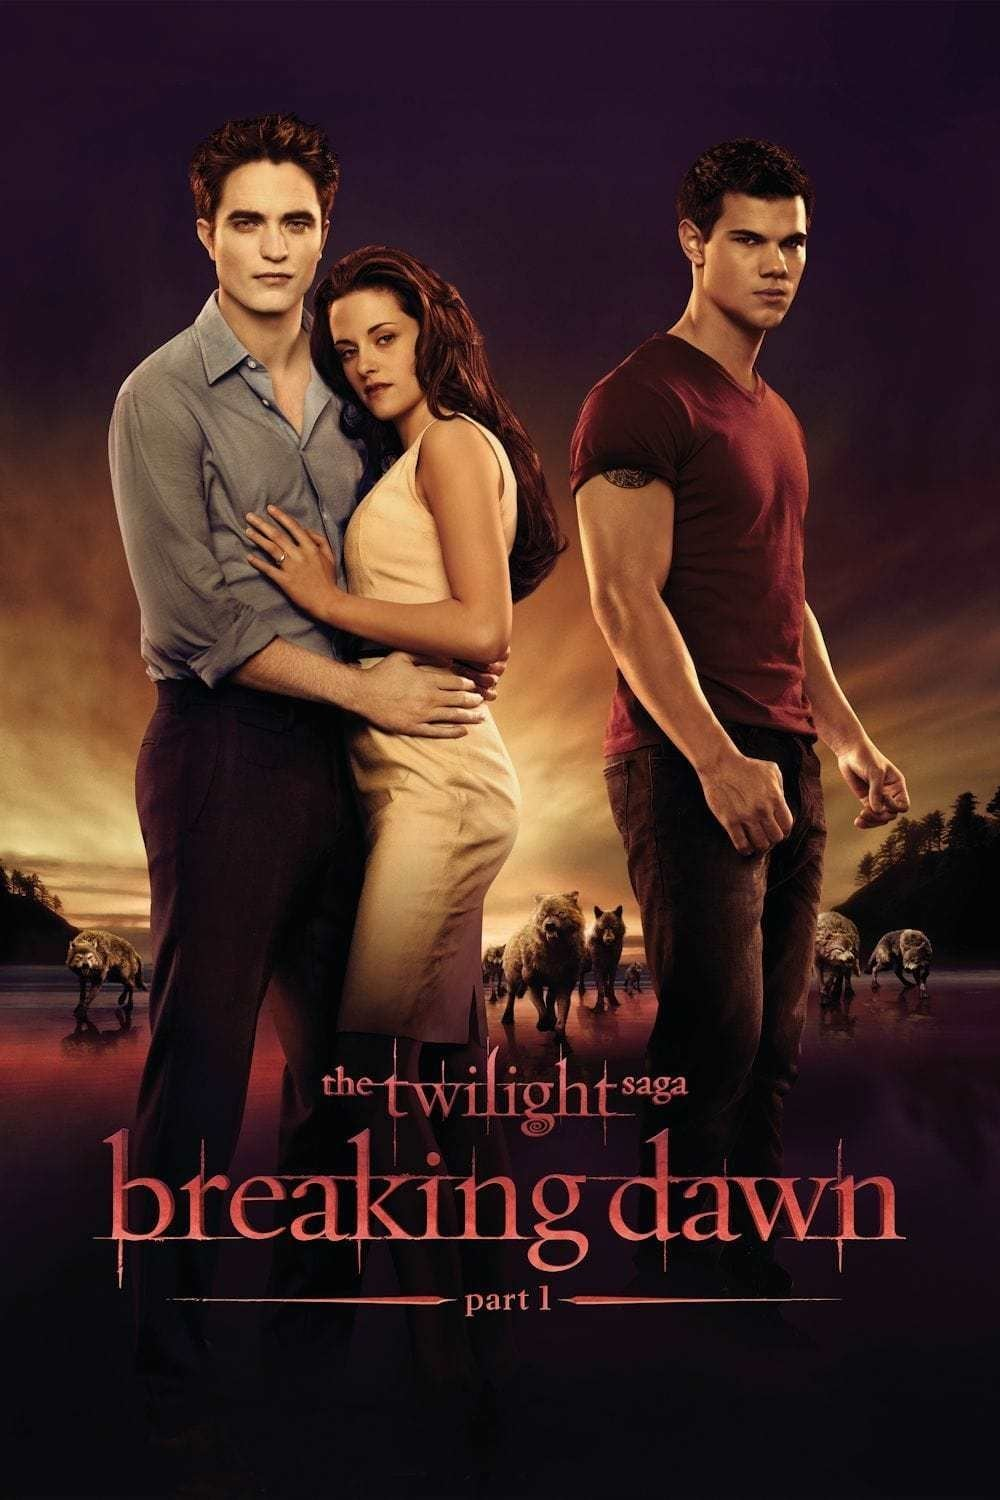 The Twilight Saga Breaking Dawn Part 1 Portuguese Movie Streaming Online Watch